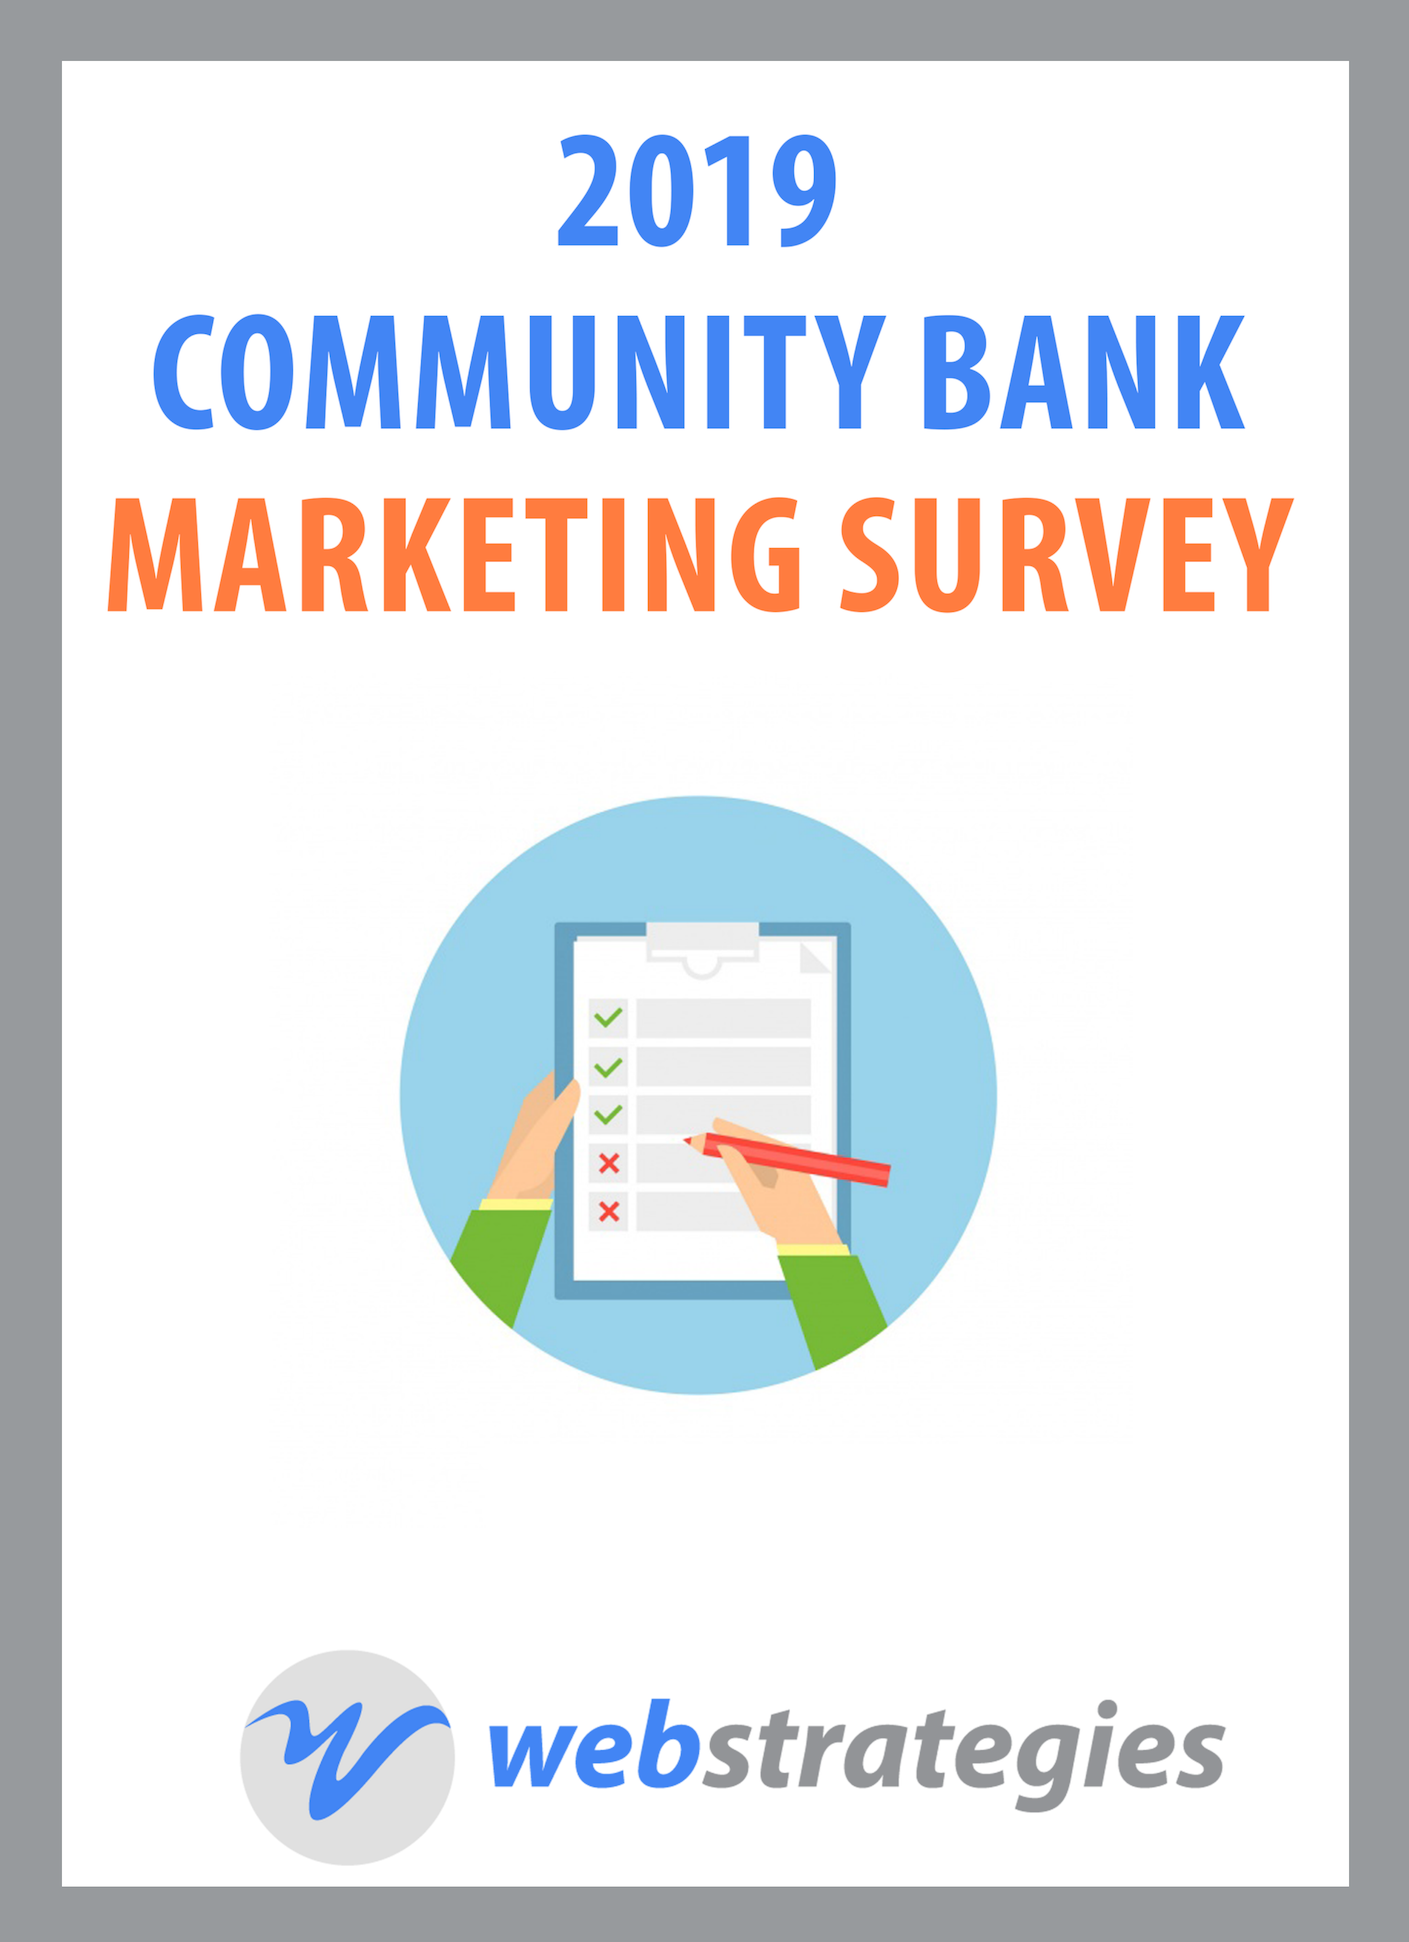 Community Bank Marketing Survey 2019